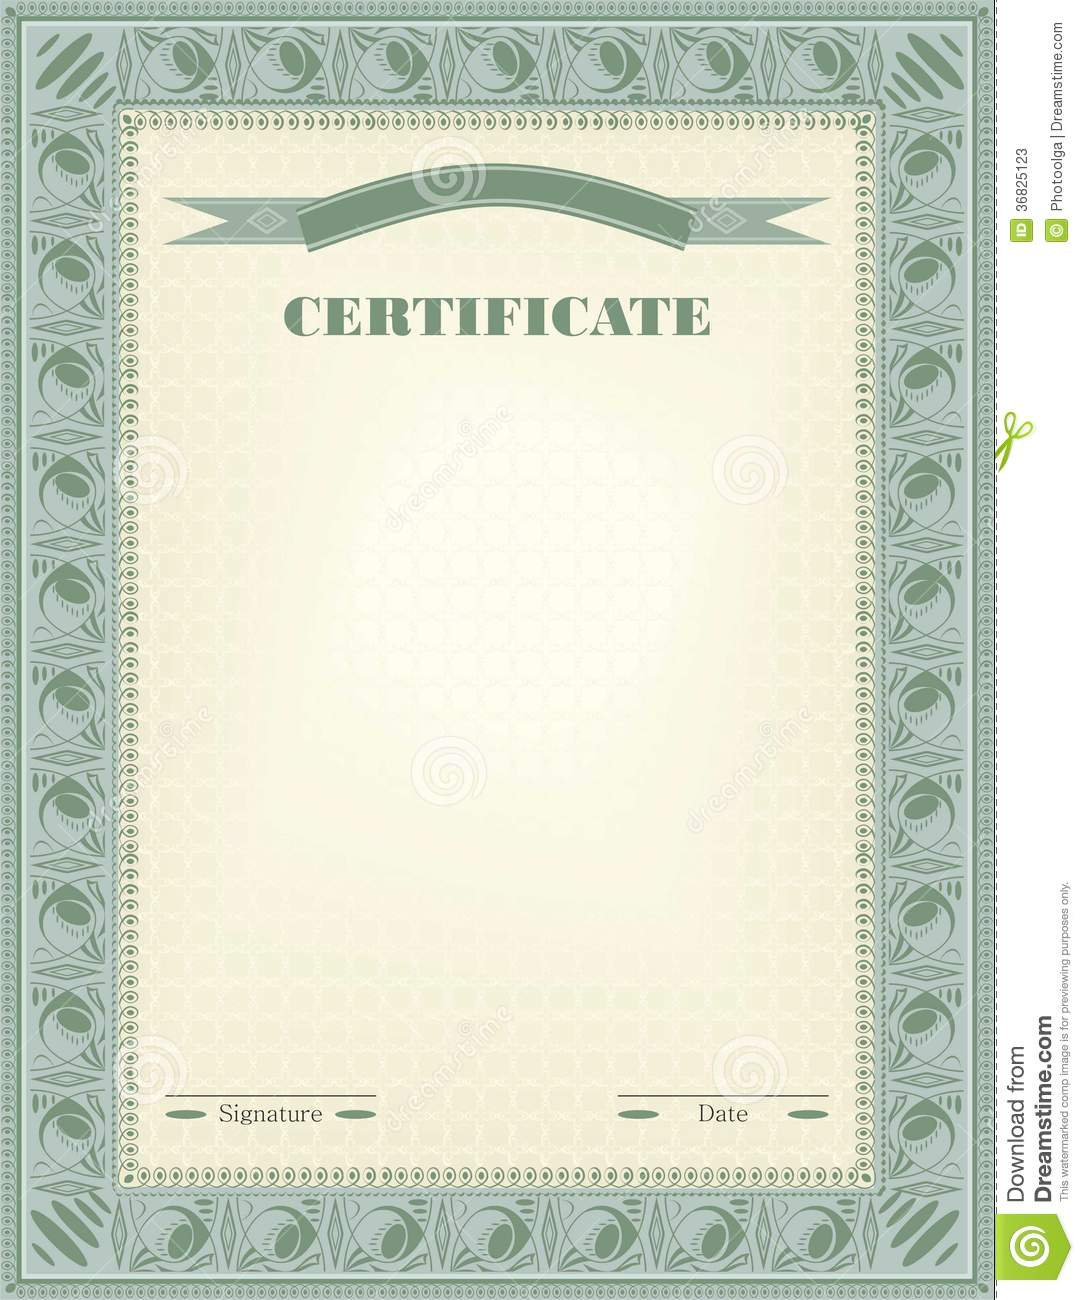 Certificate Diploma Official Document Vector Stock